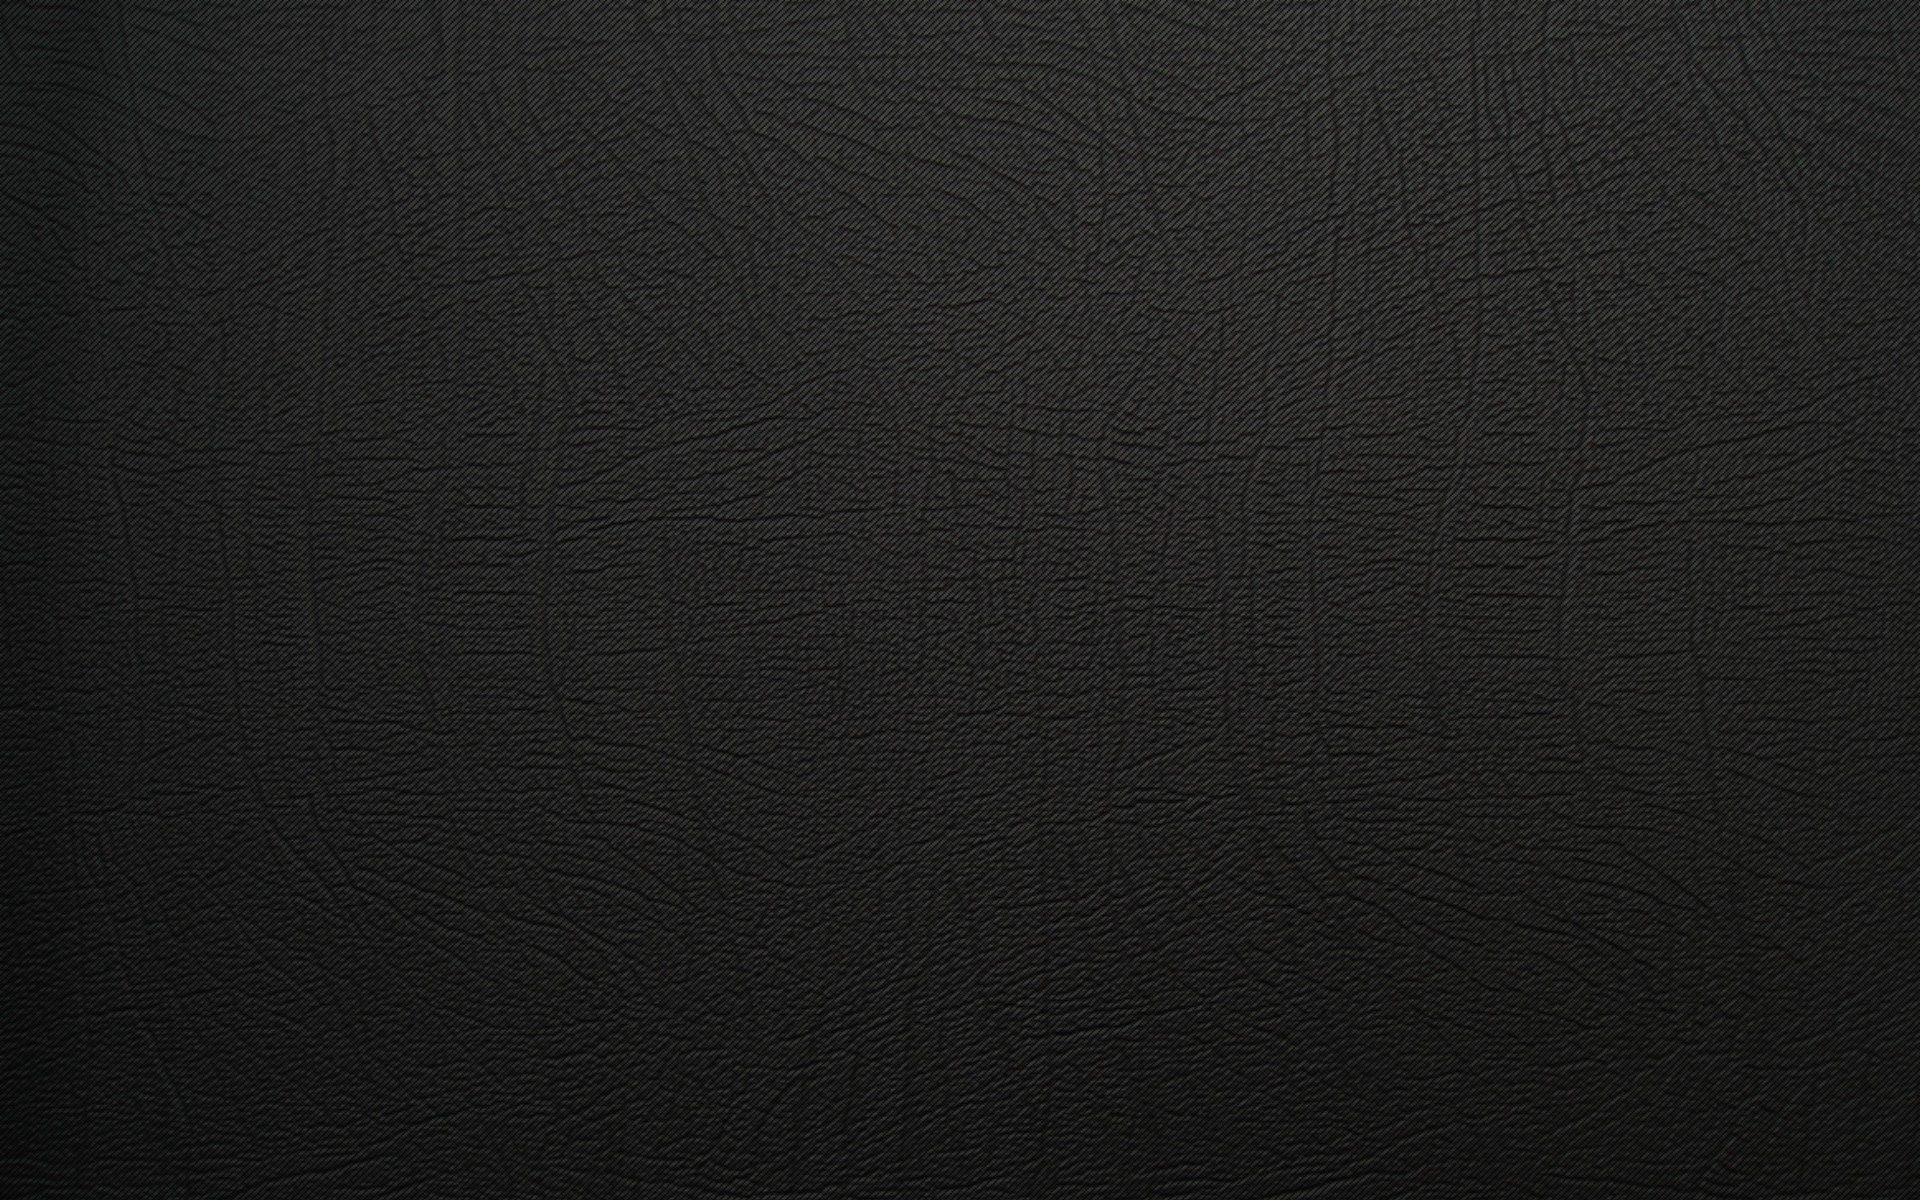 Blackboard Background 1 Download Free Stunning High Resolution